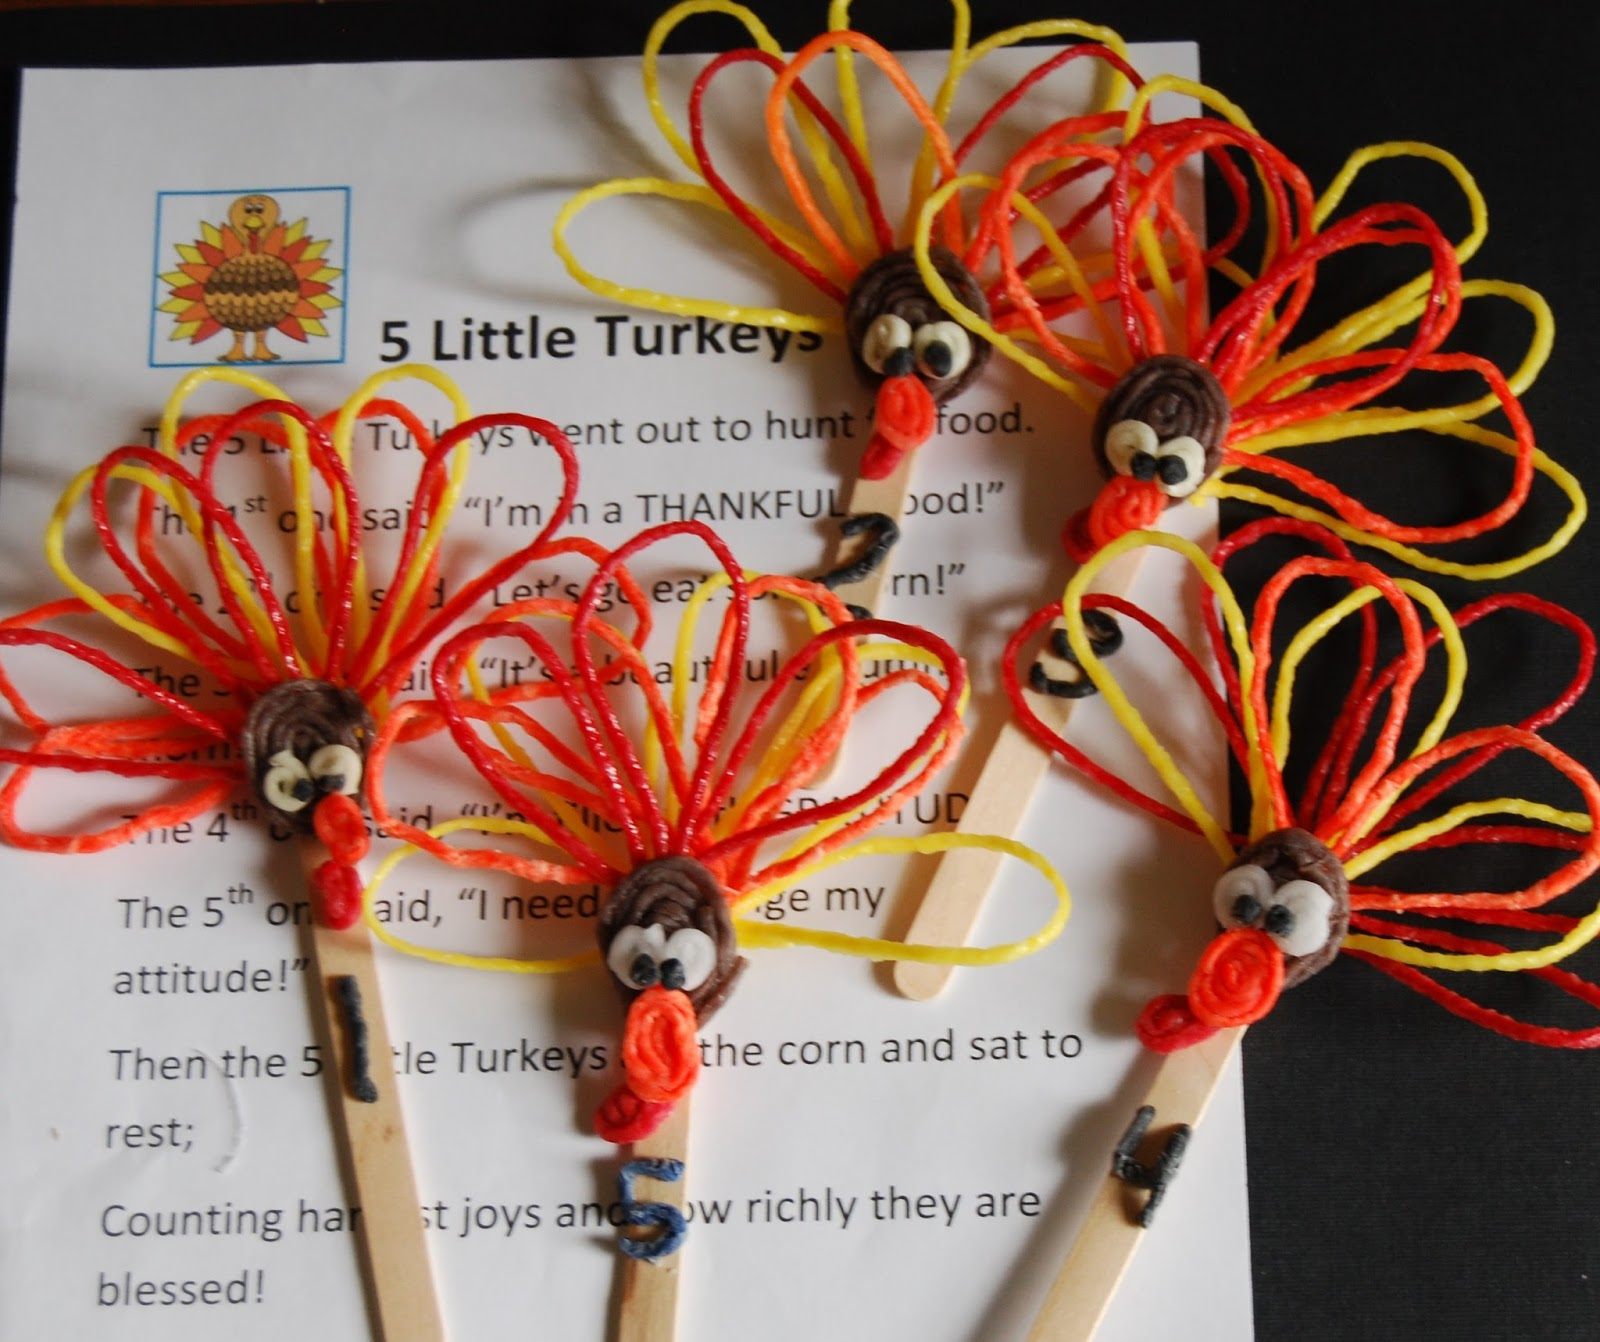 5 Little Turkeys A Gratitude Poem For Young Kids Project Gratitude 14